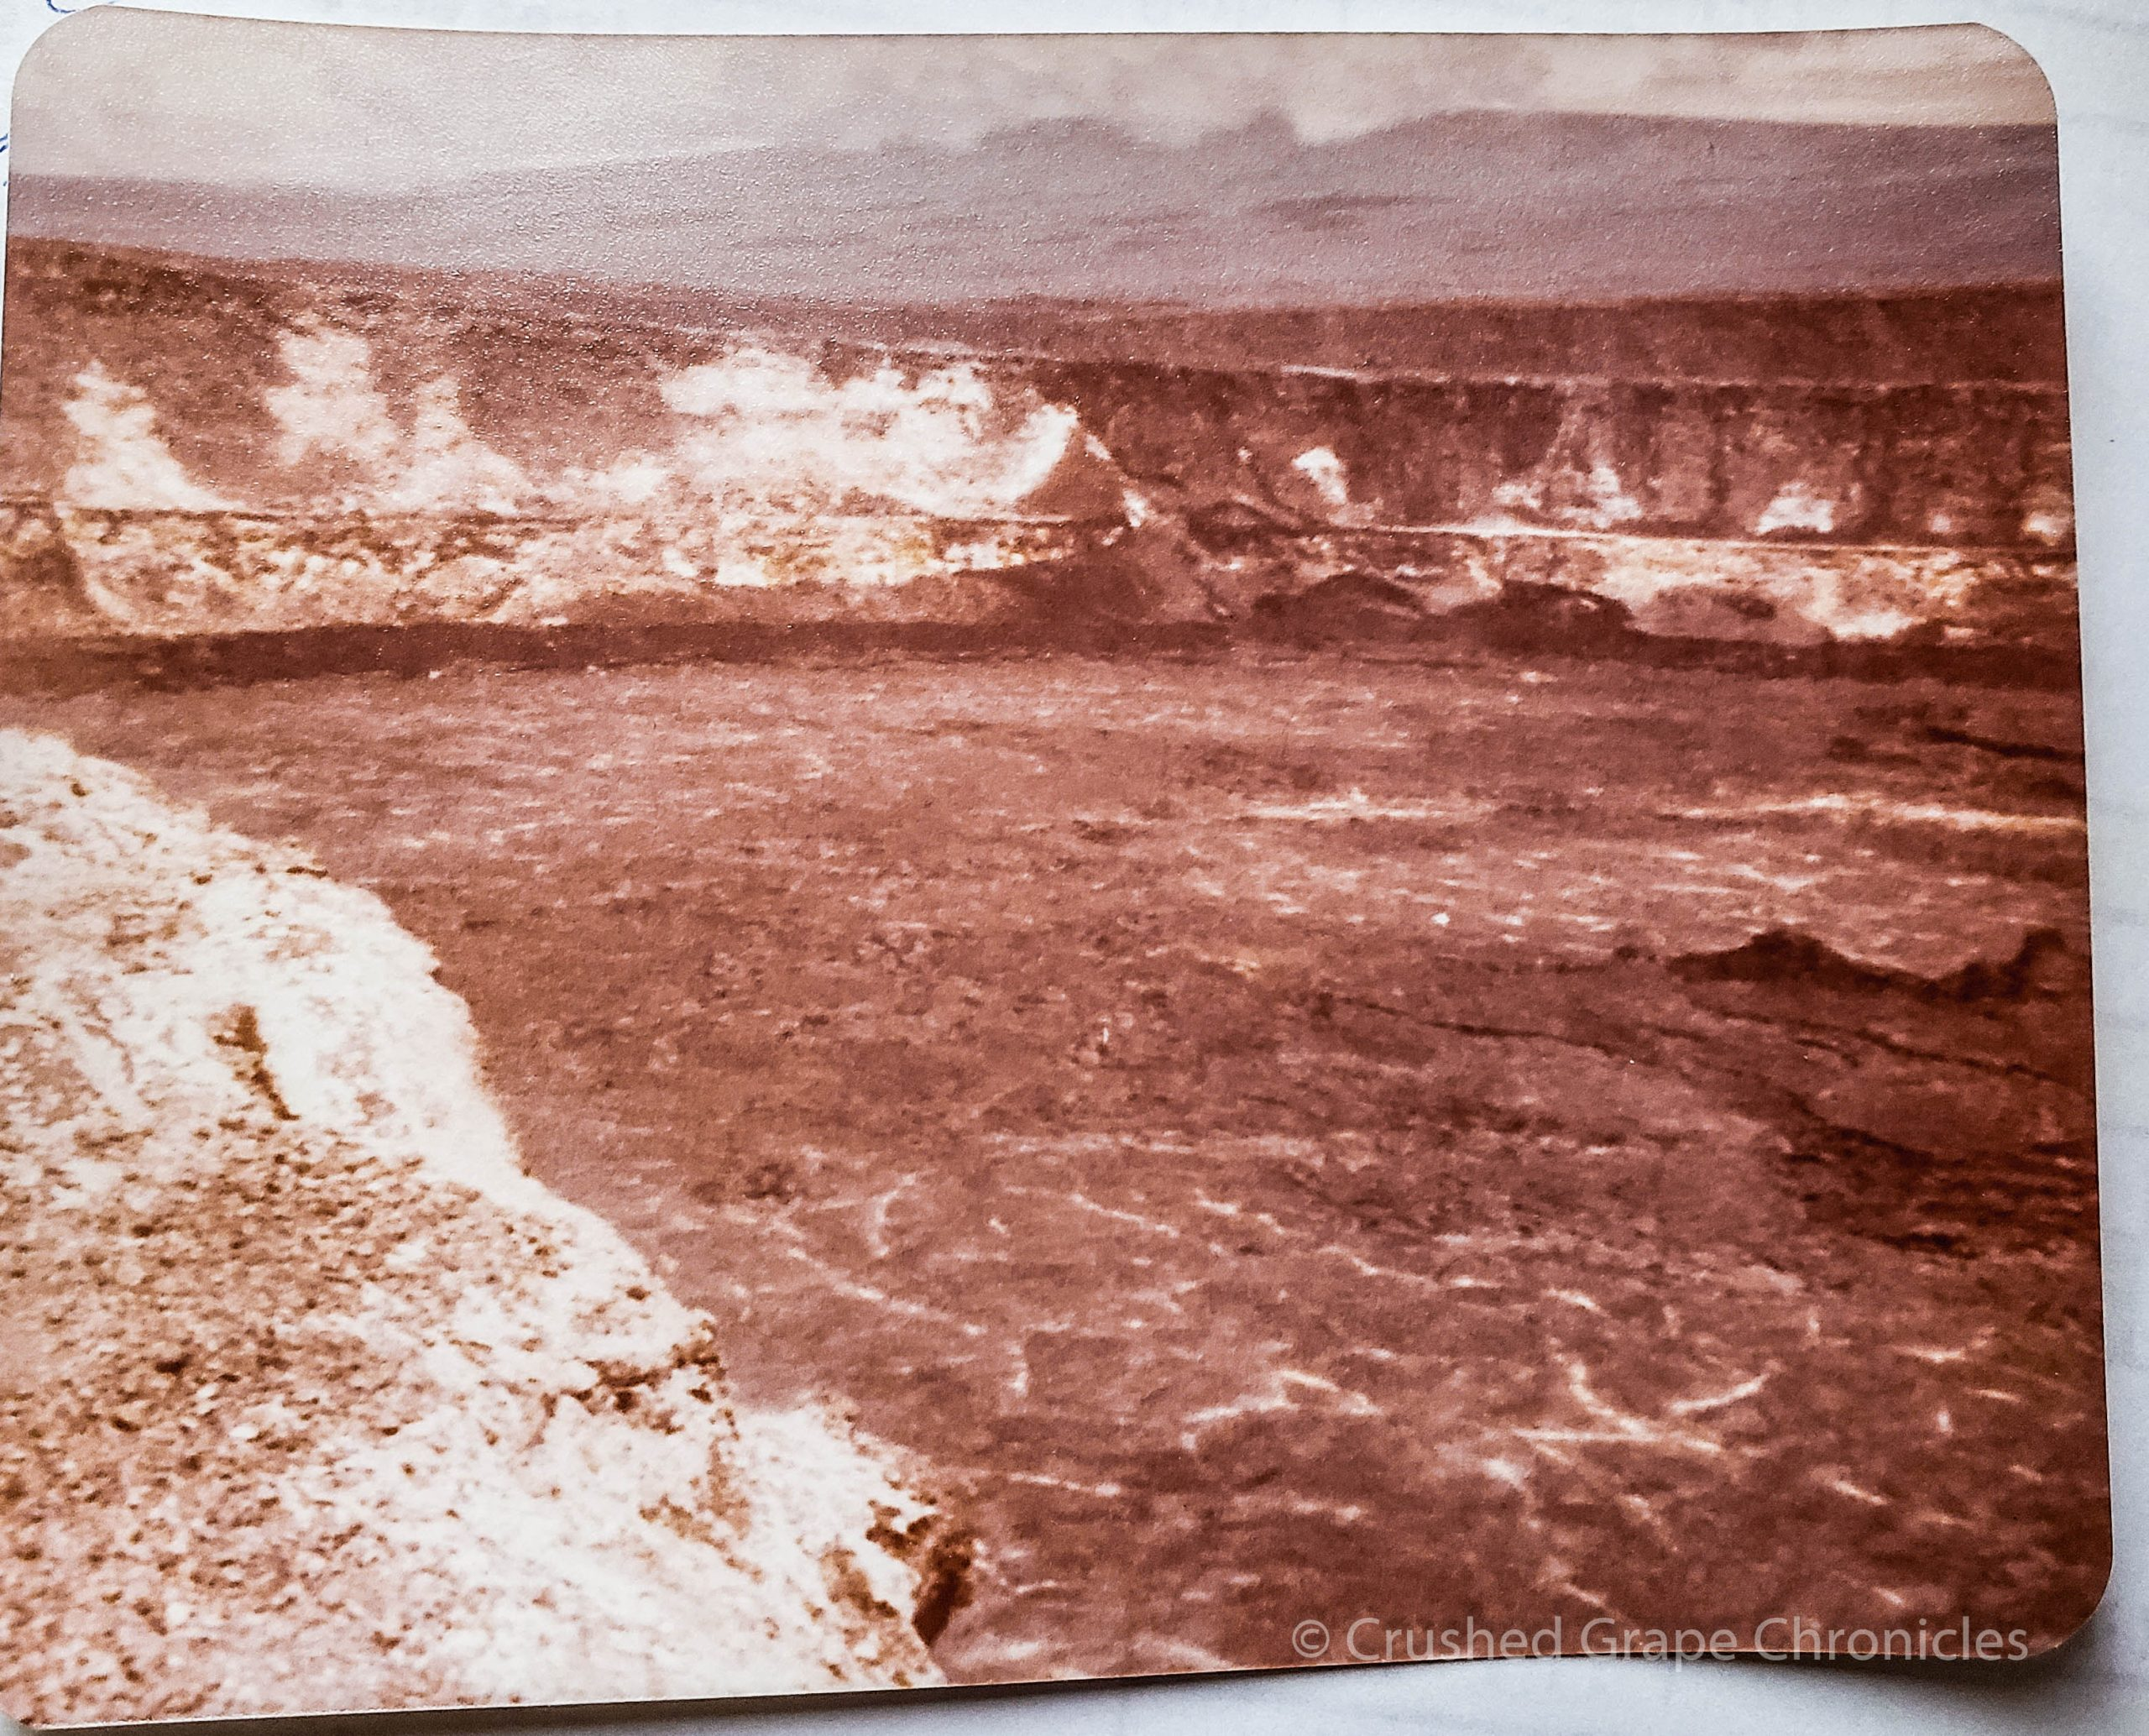 Photo of the volcanic crater at Kilauea circa 1978